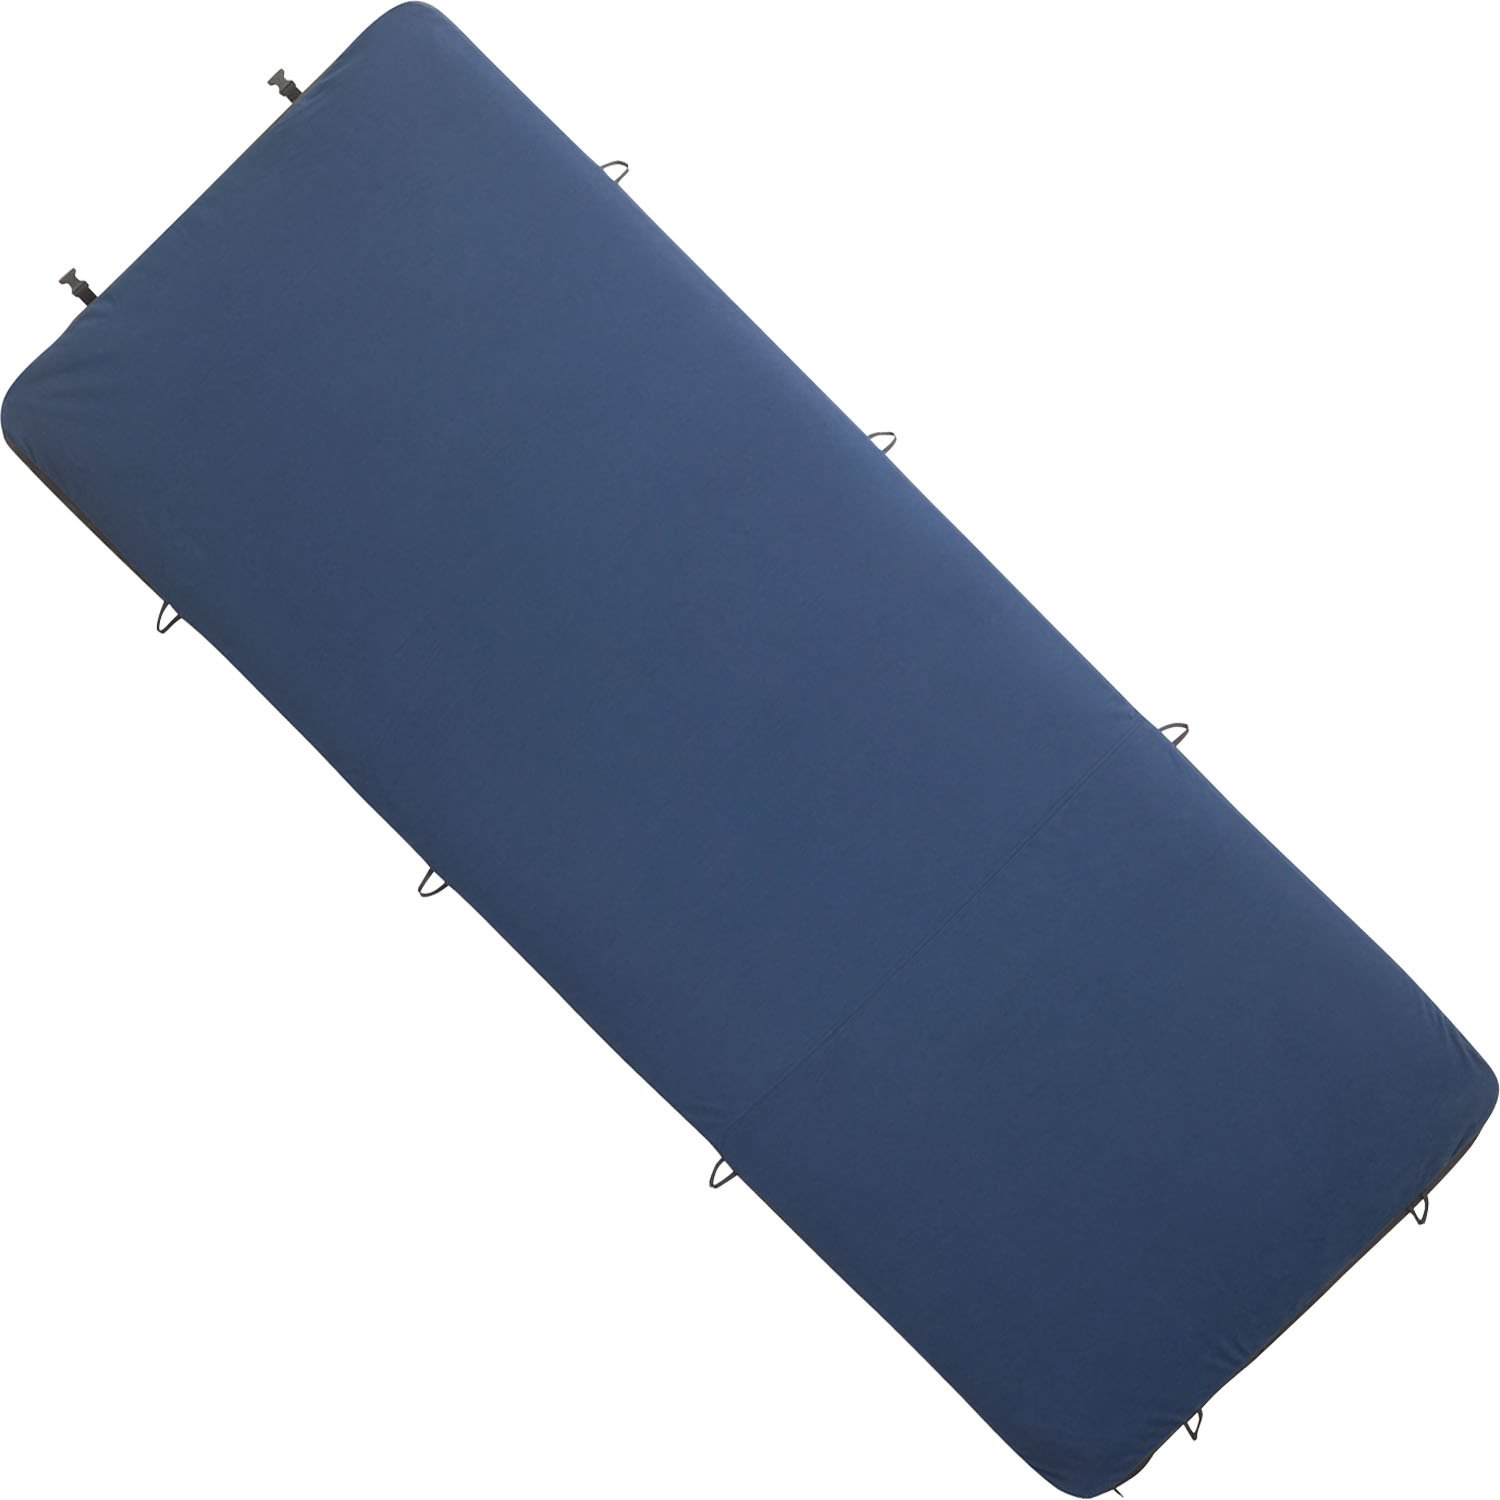 Thermarest DreamTime Self Inflating Mattress